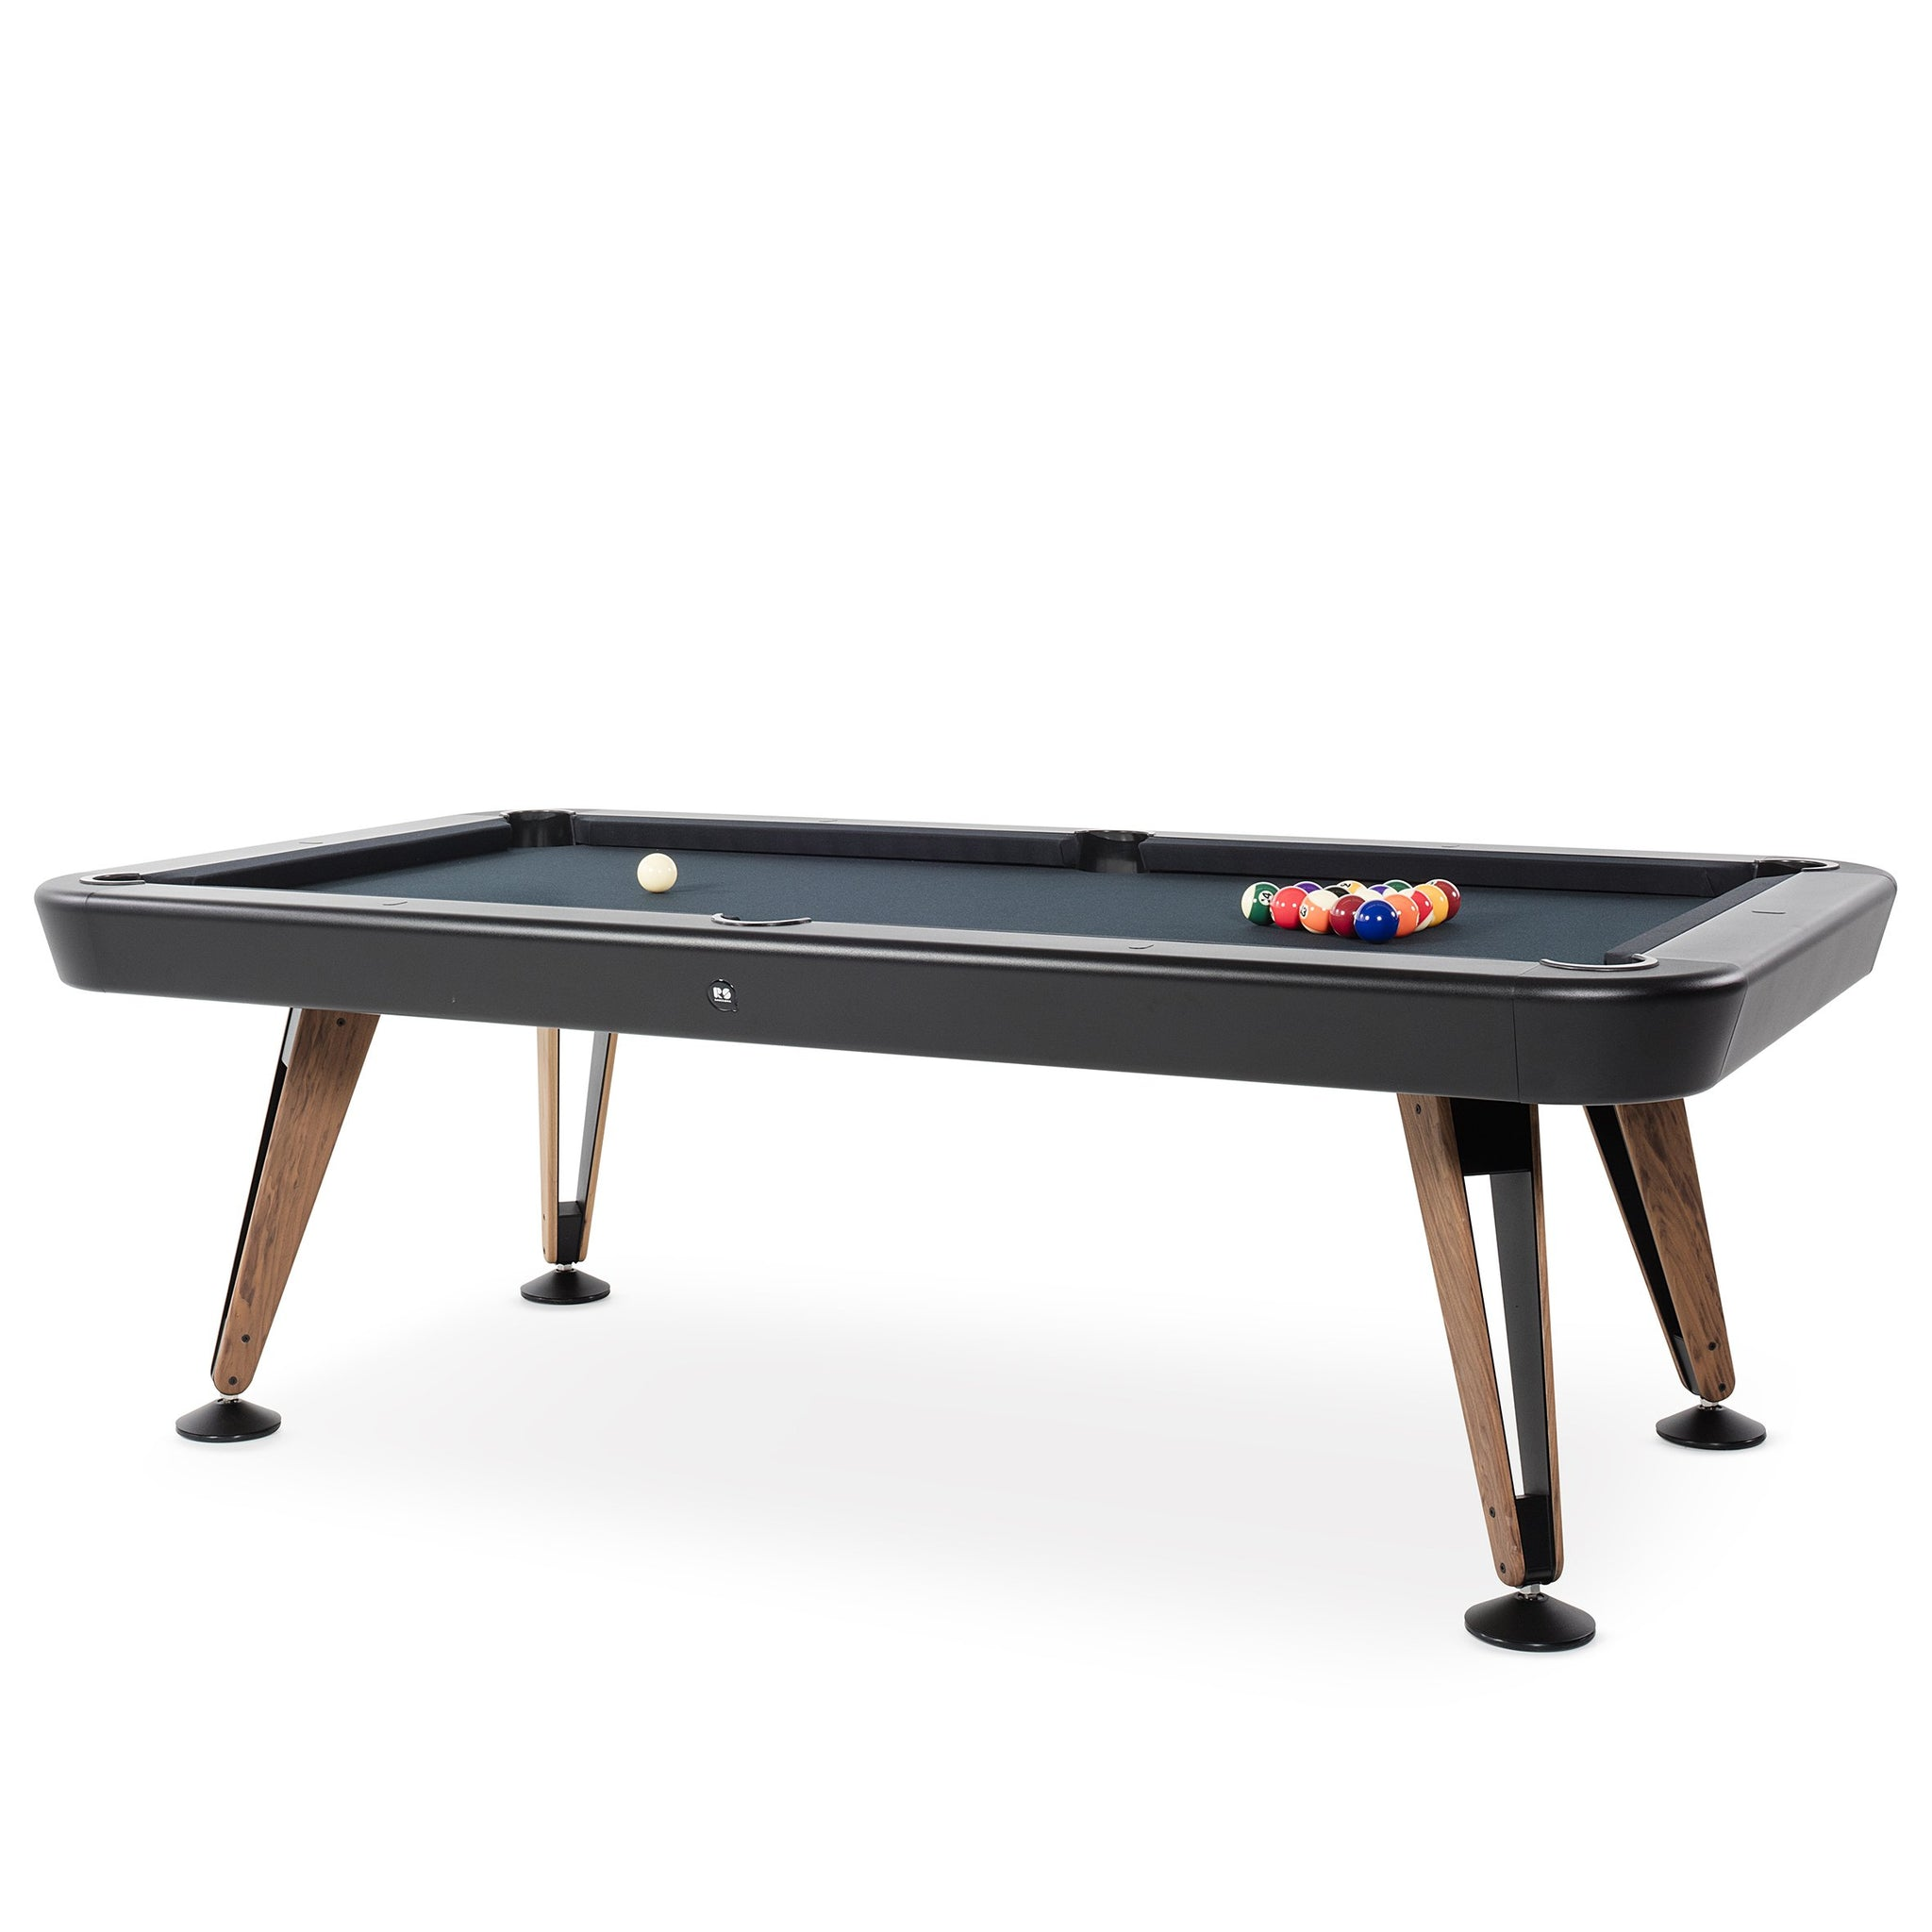 Diagonal American Pool Table in Black 7ft, 8ft